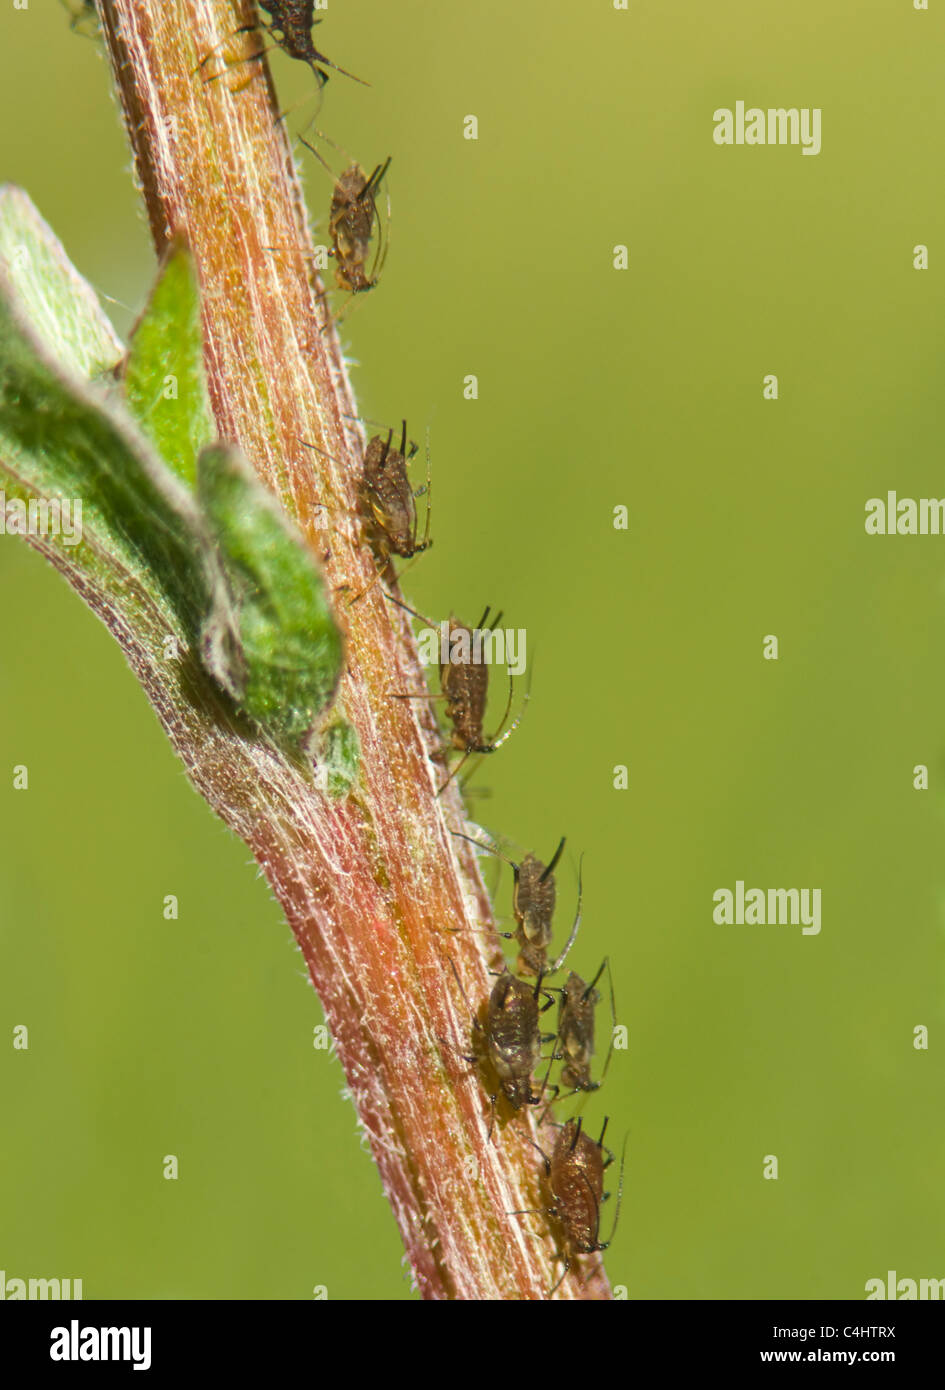 common-nettle-aphids-microlophium-carnos